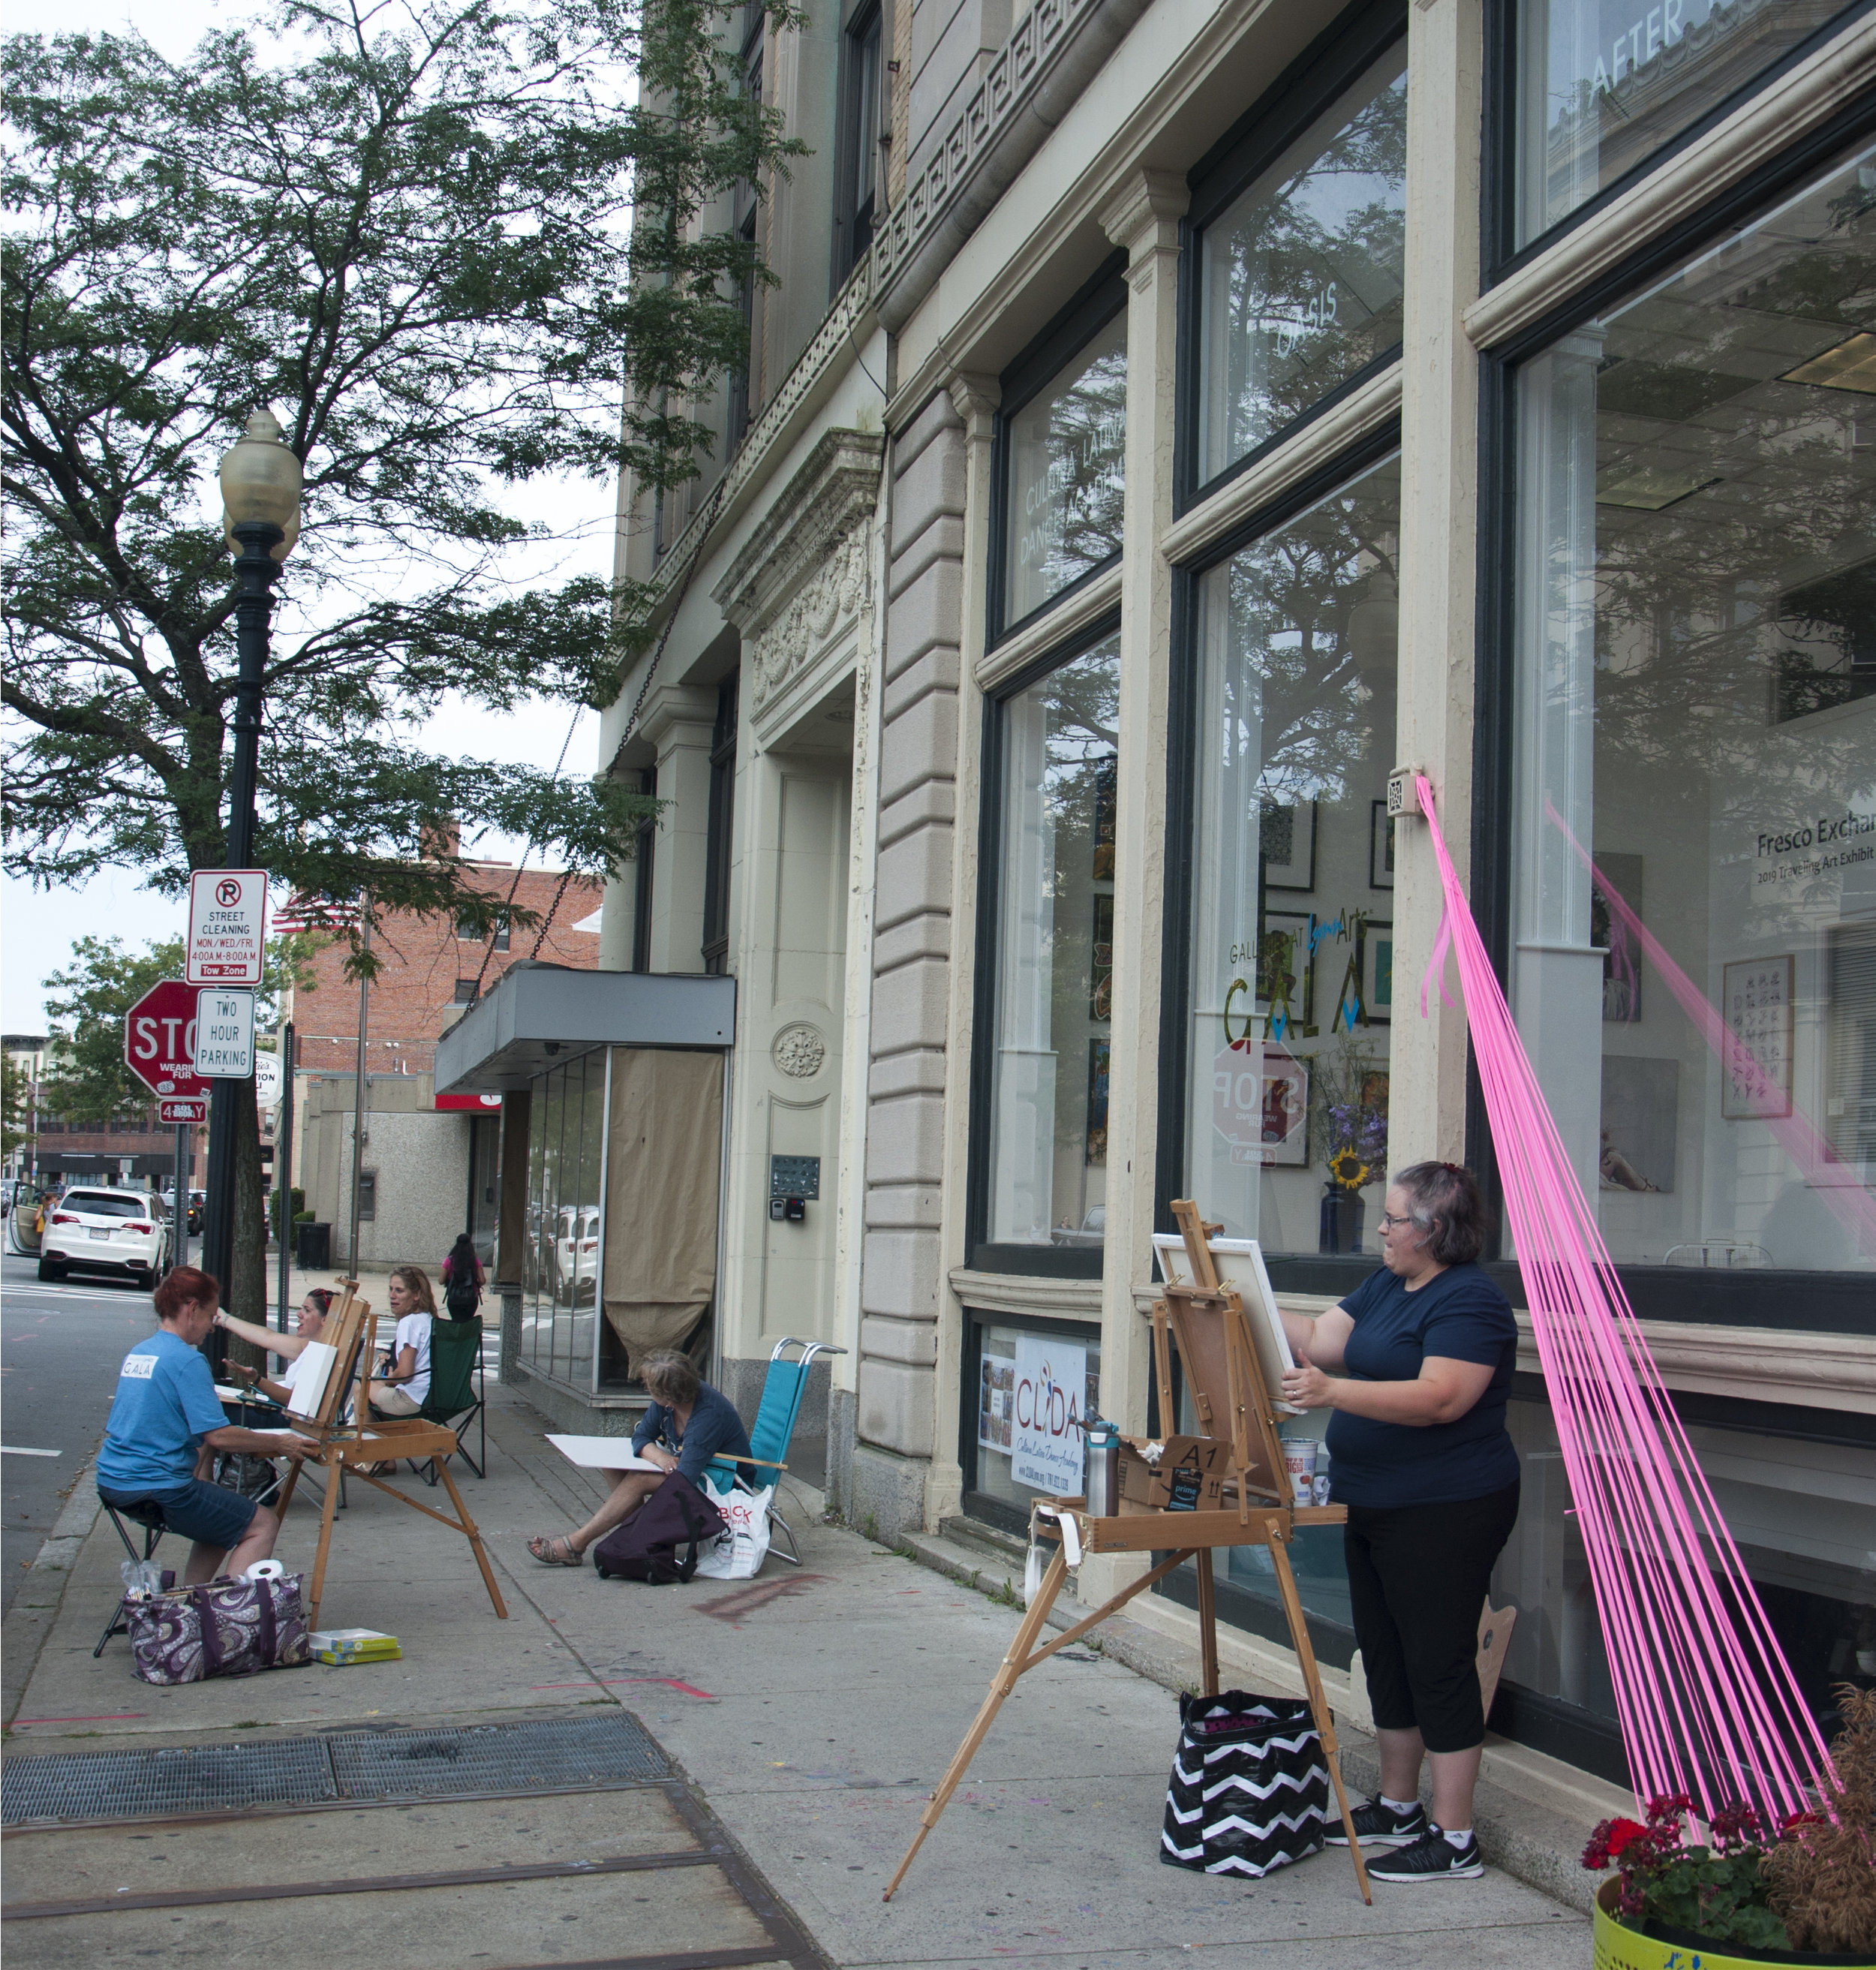 August 3, 2019 Plein Air Excursion during Rock the Block. Photo credit Vacant Skye Photography.